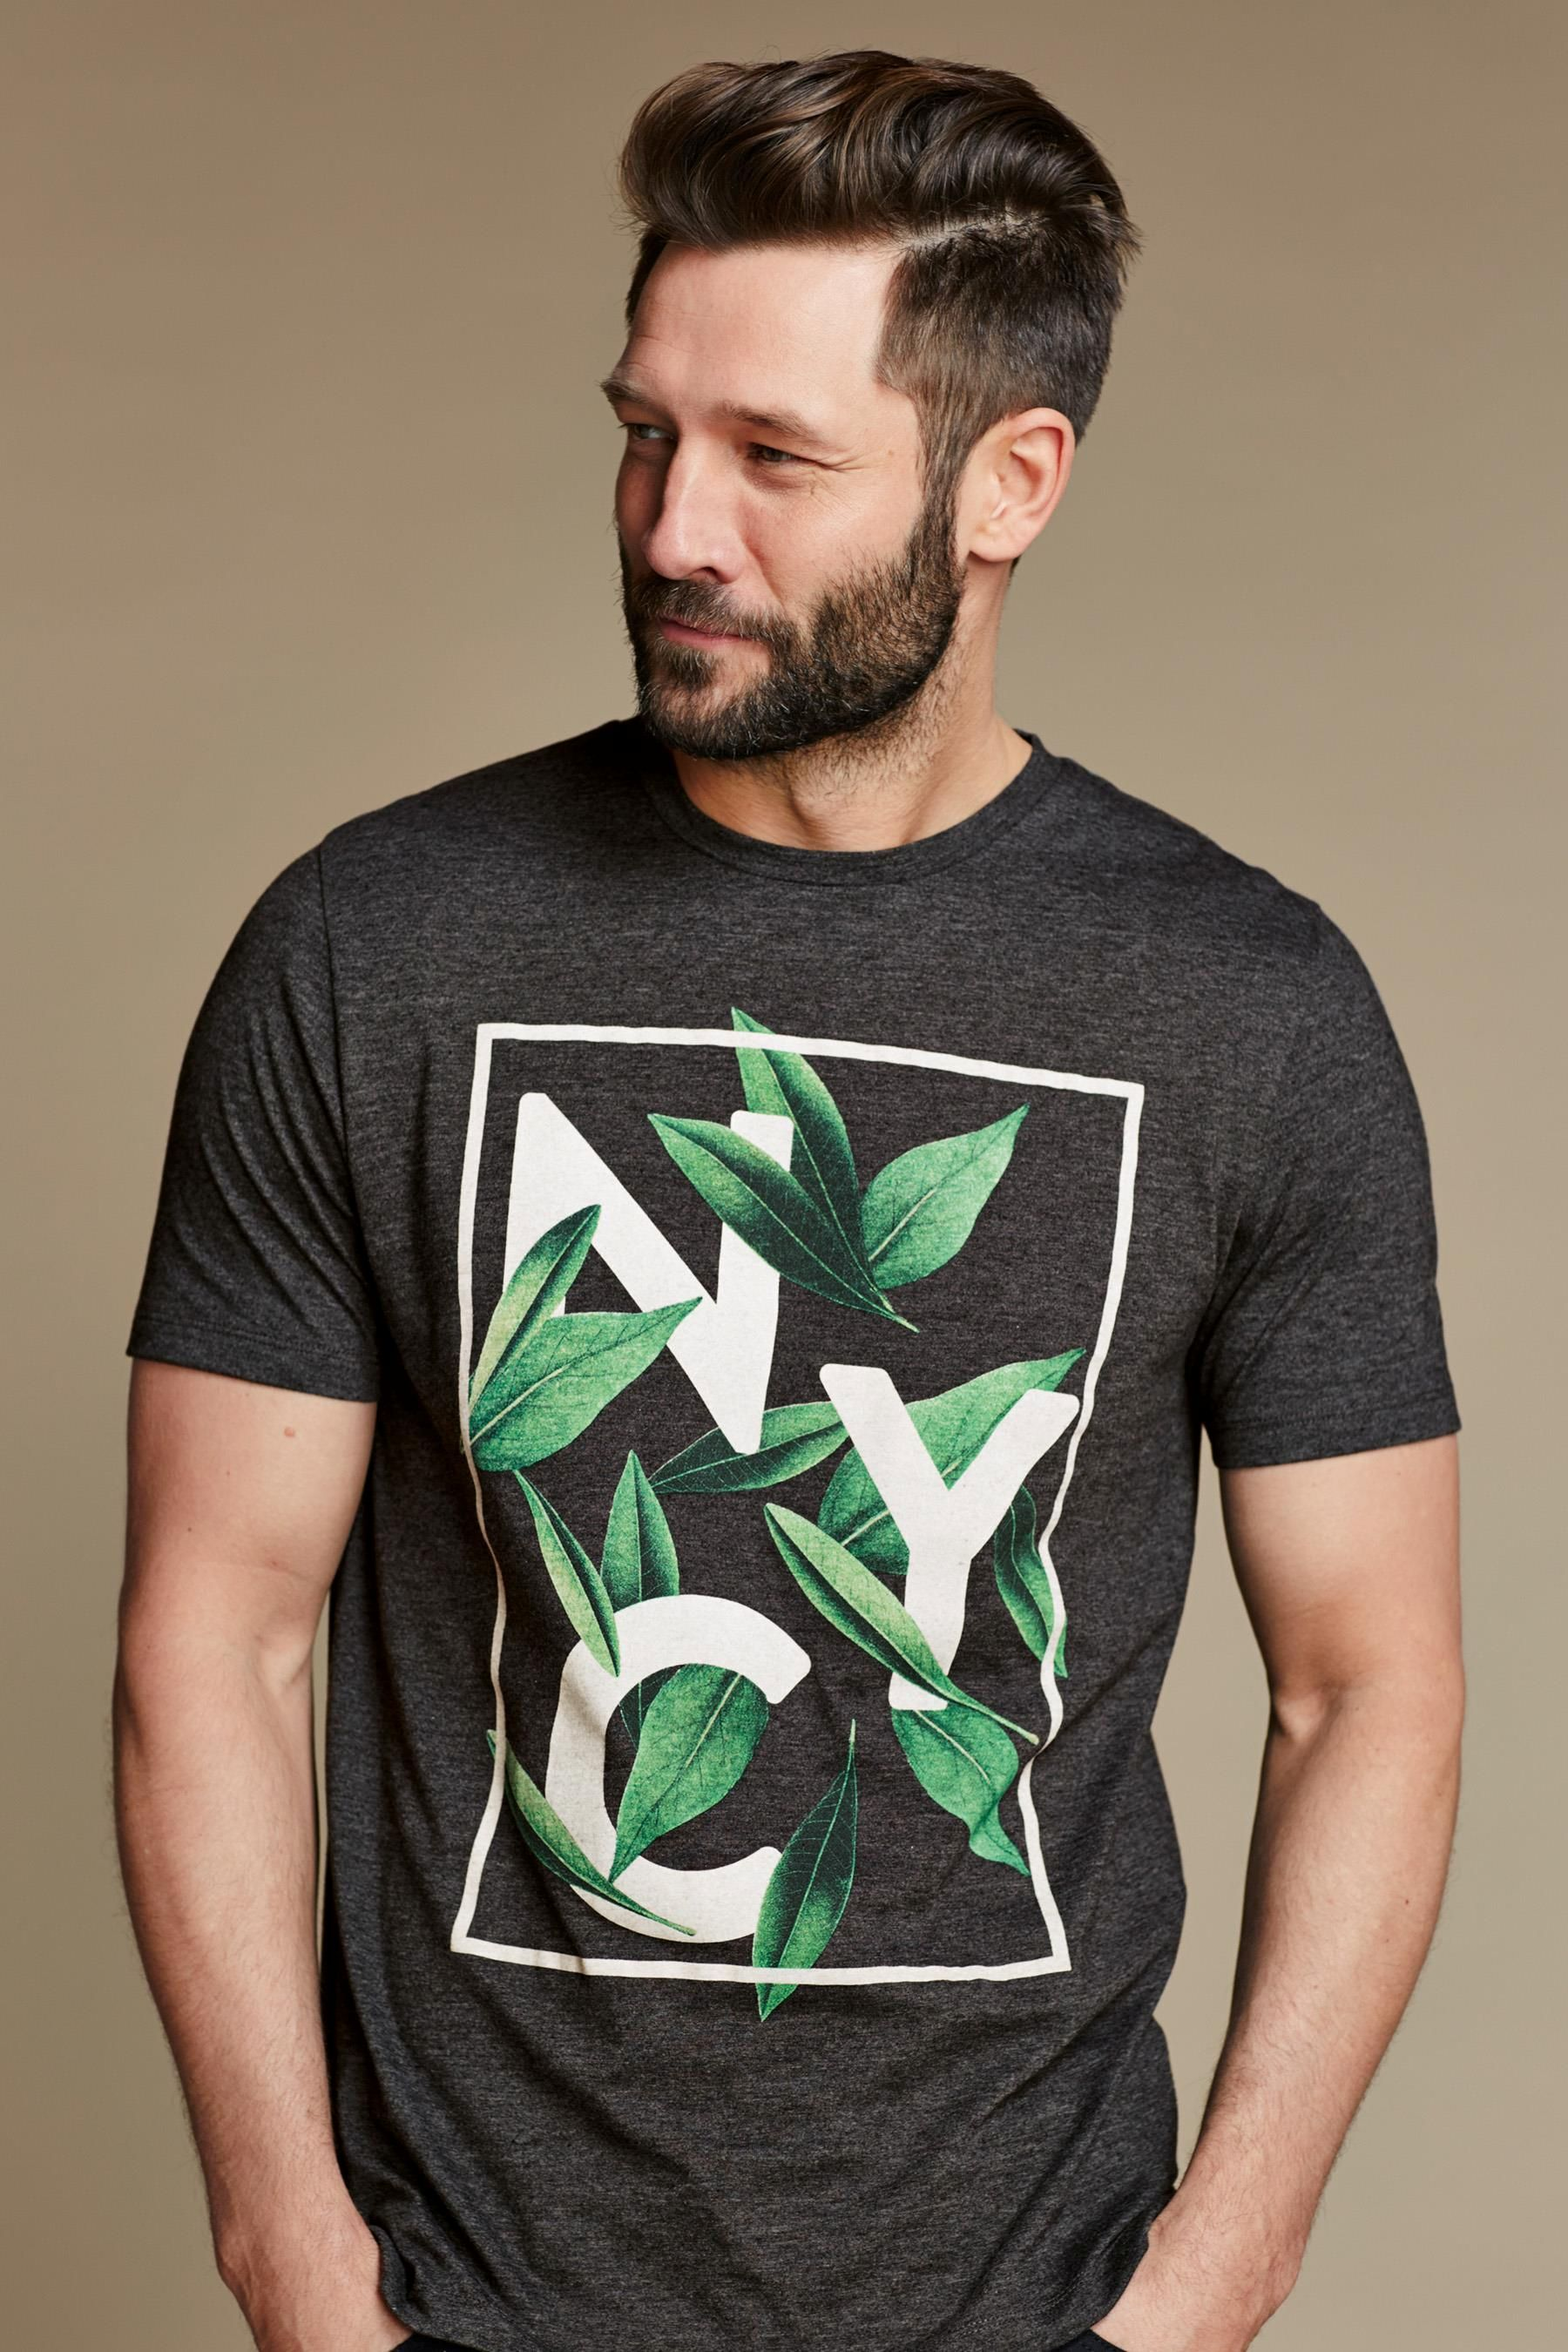 Design t shirt cheap uk - Buy Charcoal Nyc Leaf T Shirt From The Next Uk Online Shop Good